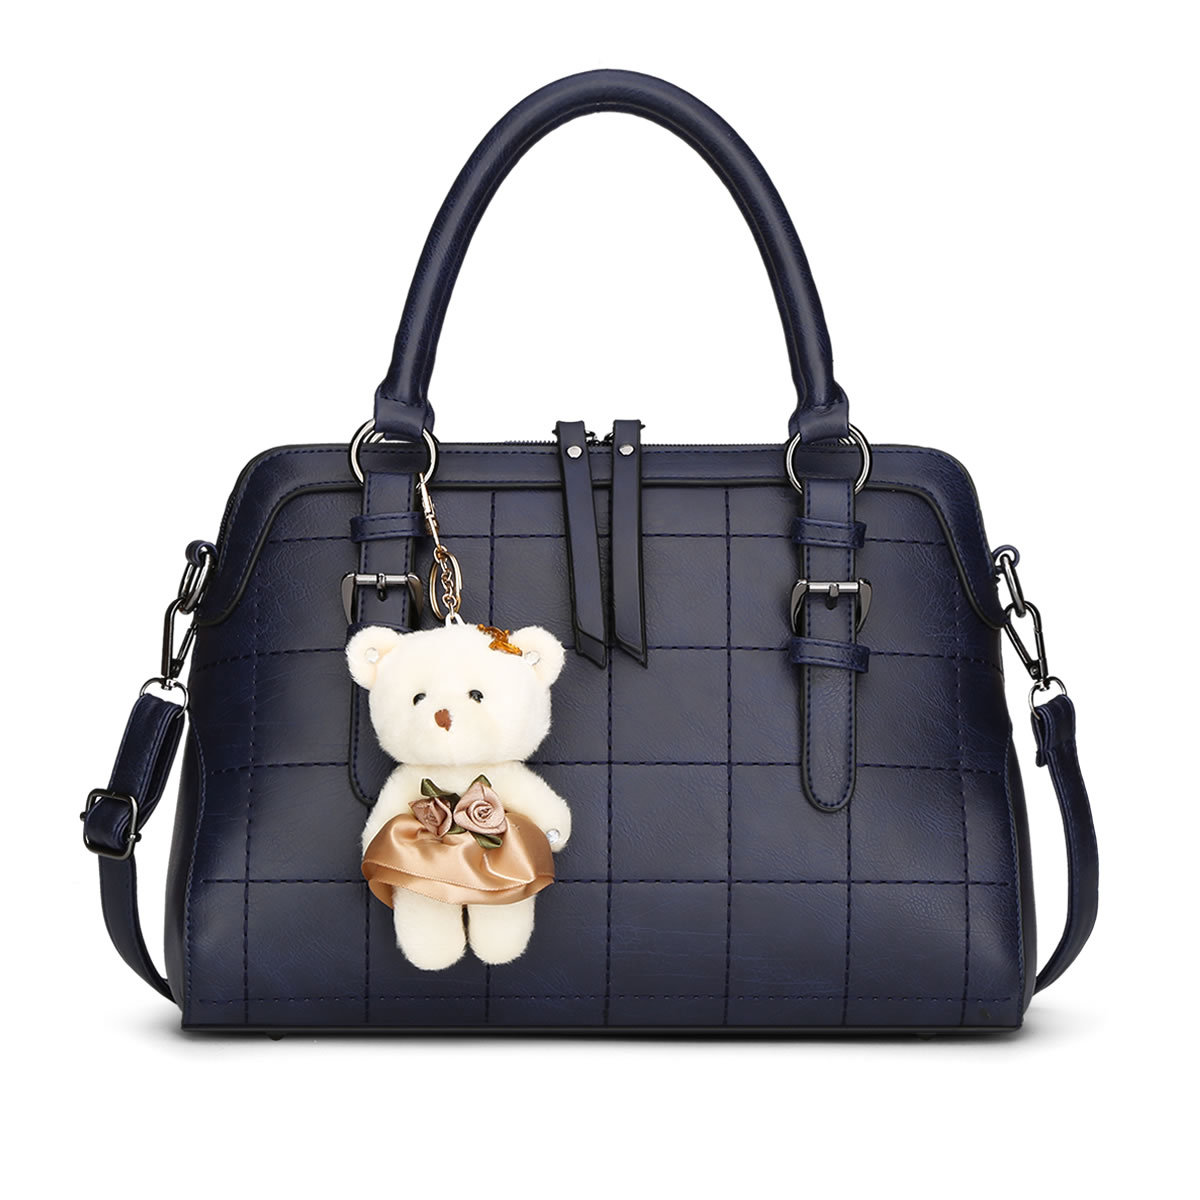 2016 Spring New Plaid Women Shoulder Bag With Bear Toy High Quality European and American Women Bags Vintage Handbag Q5